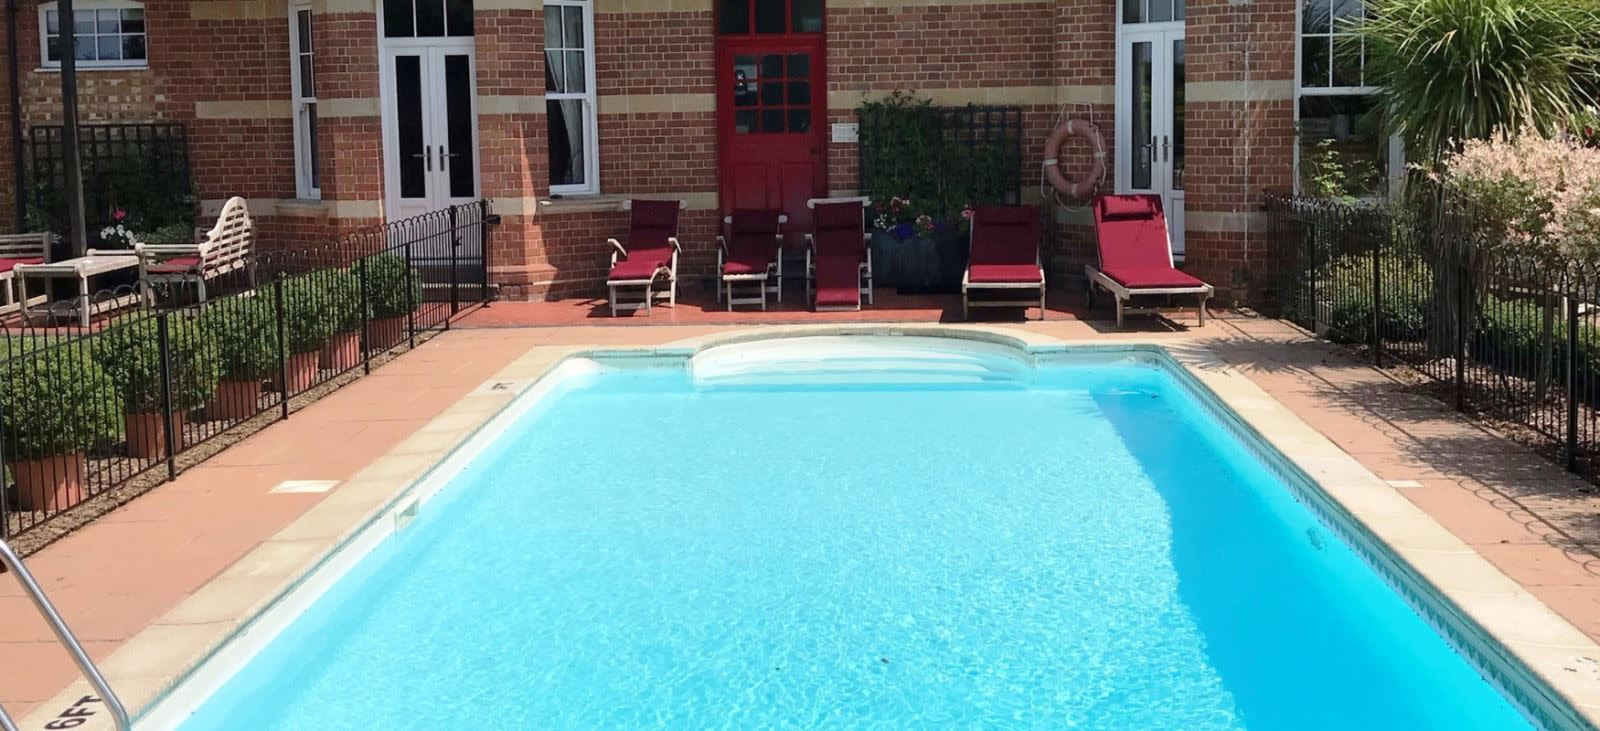 Outdoor swimming pool at The Dower House Hotel, Lyme Regis in Dorset